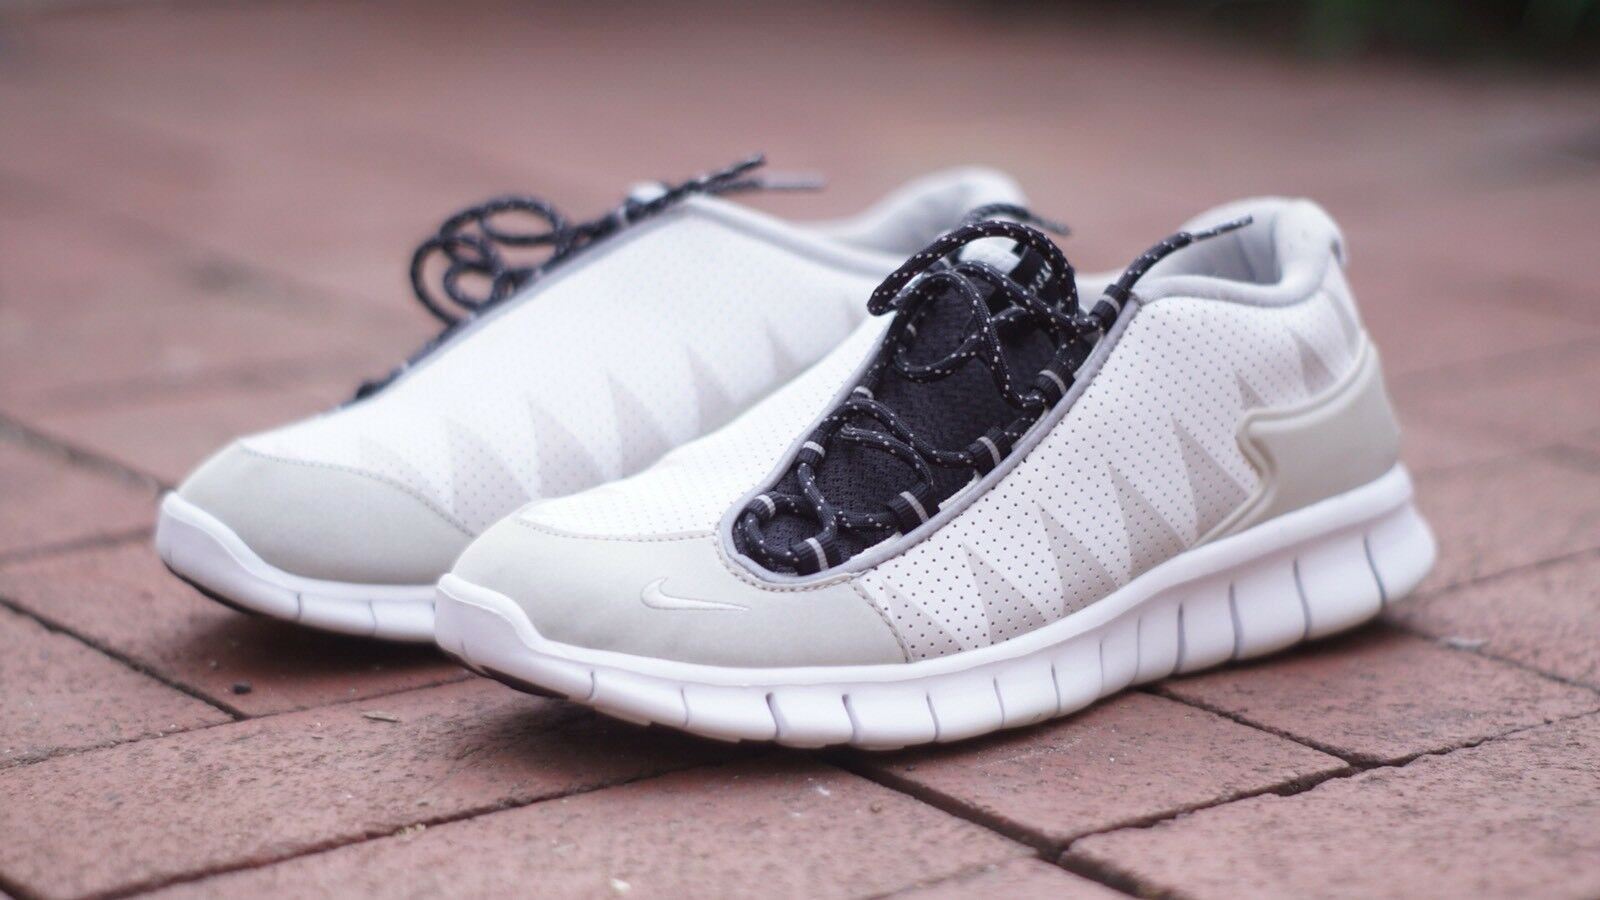 Nike Foot Free Scape White Gray 487785 100 Running Shoes